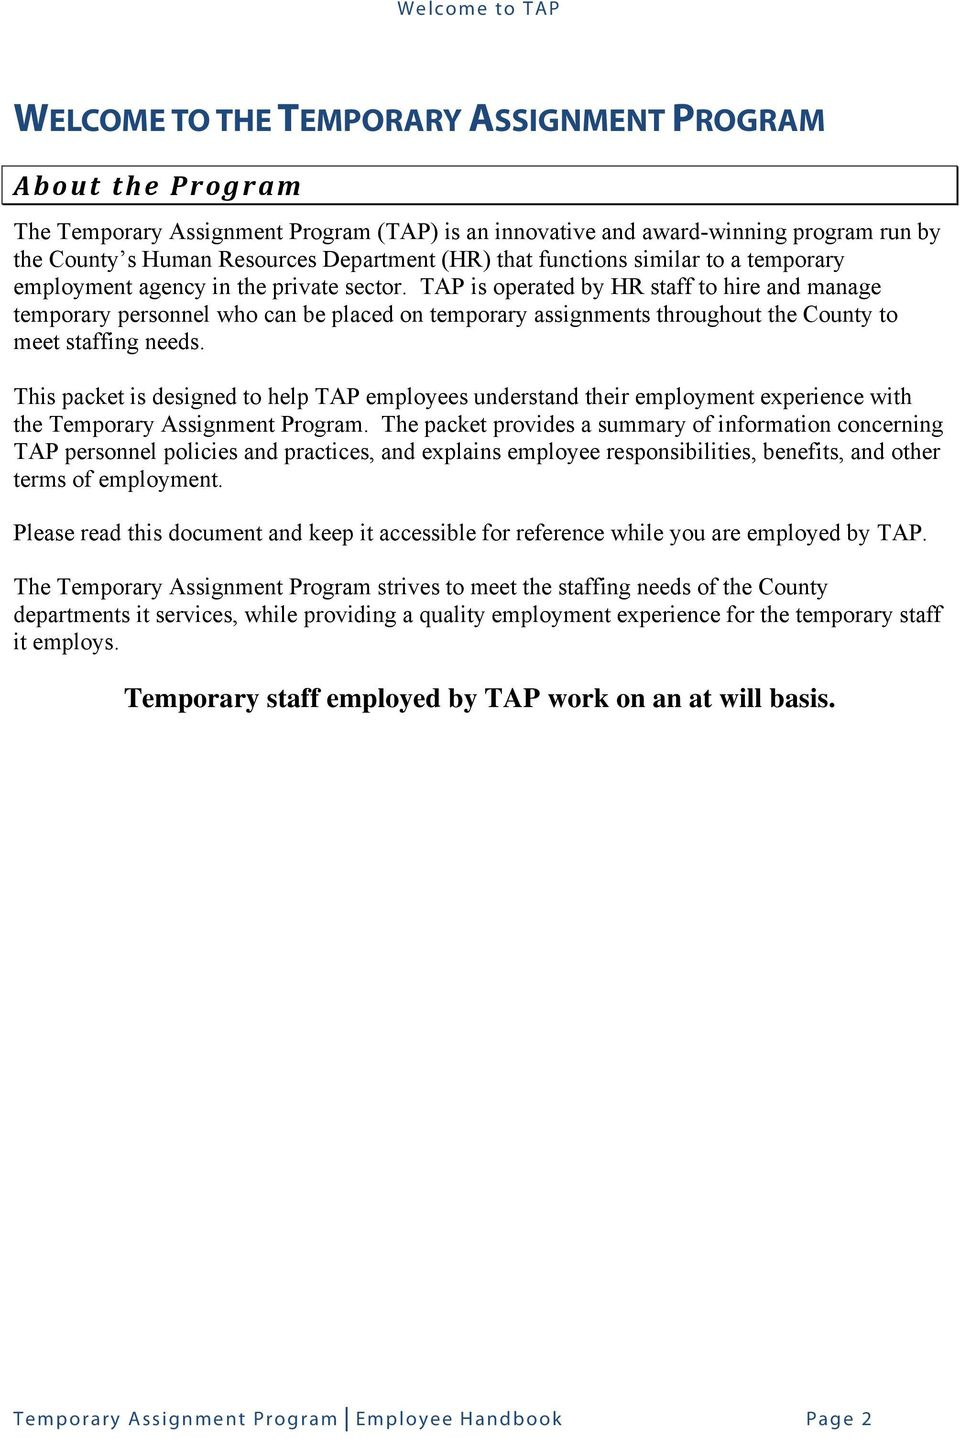 TAP is operated by HR staff to hire and manage temporary personnel who can be placed on temporary assignments throughout the County to meet staffing needs.